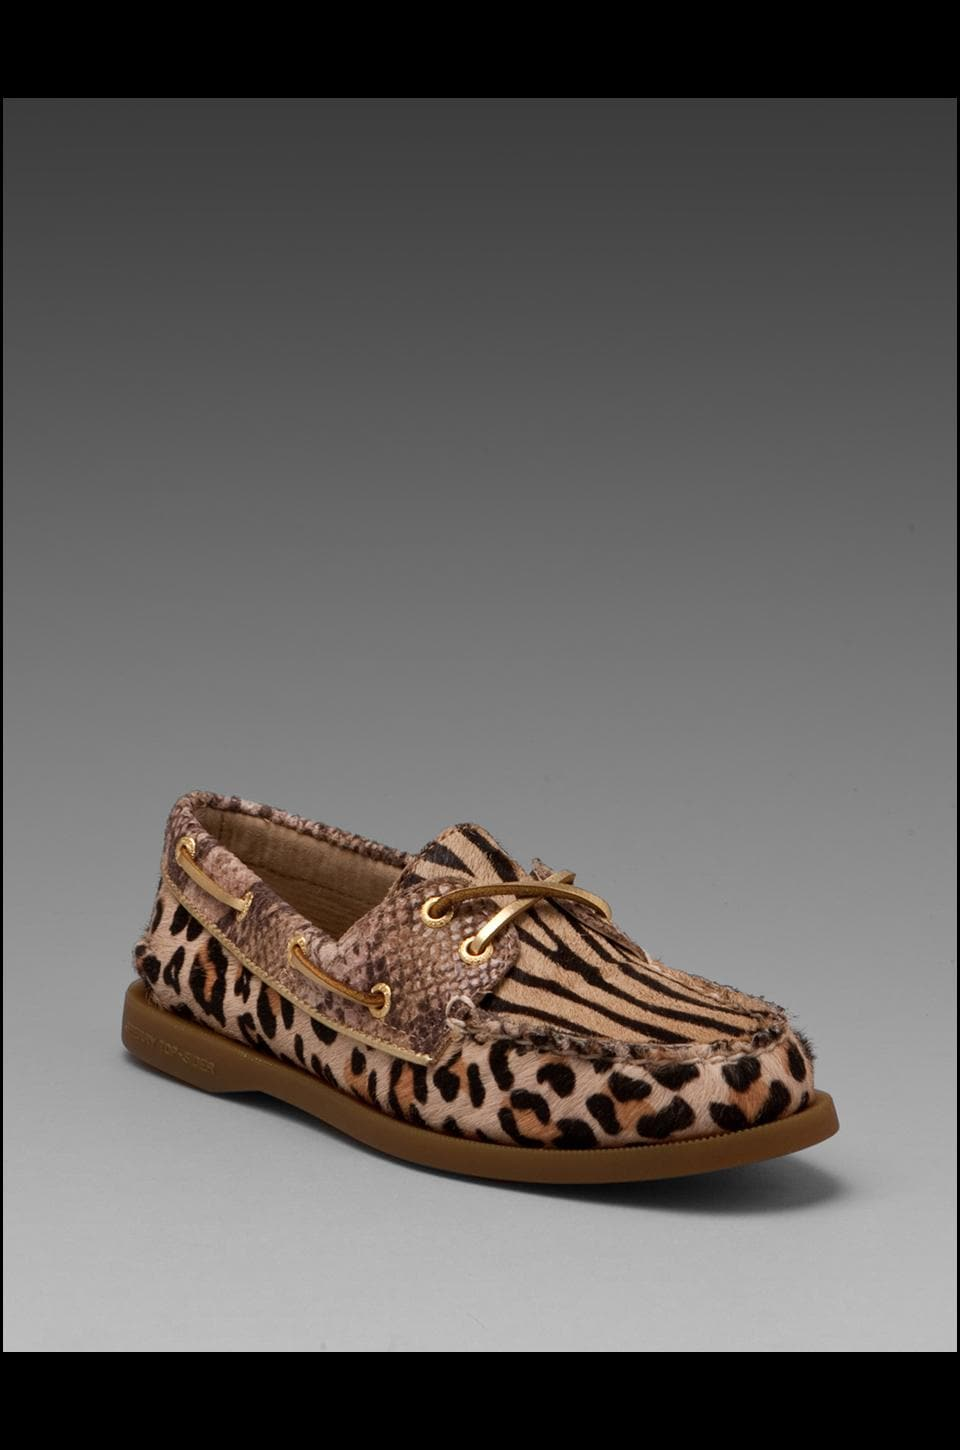 Sperry Top-Sider 2-Eye in Sand/Brown